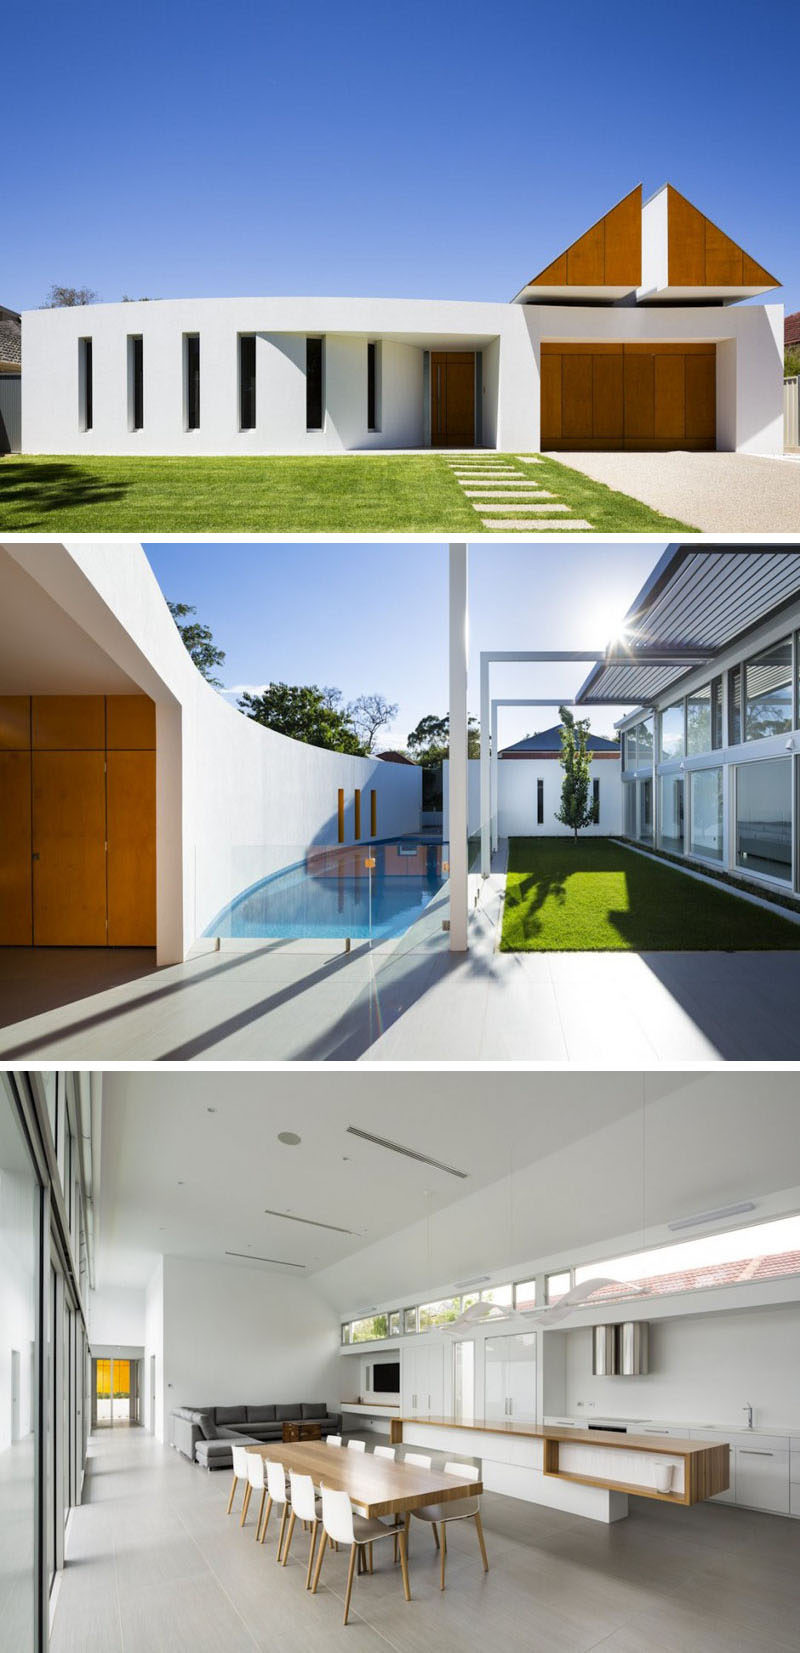 Celebrate Australia Day With These 14 Contemporary Australian Houses | The clean white look of the exterior of this Adelaide home continues inside where simple, bright, minimalist decor fills the space.